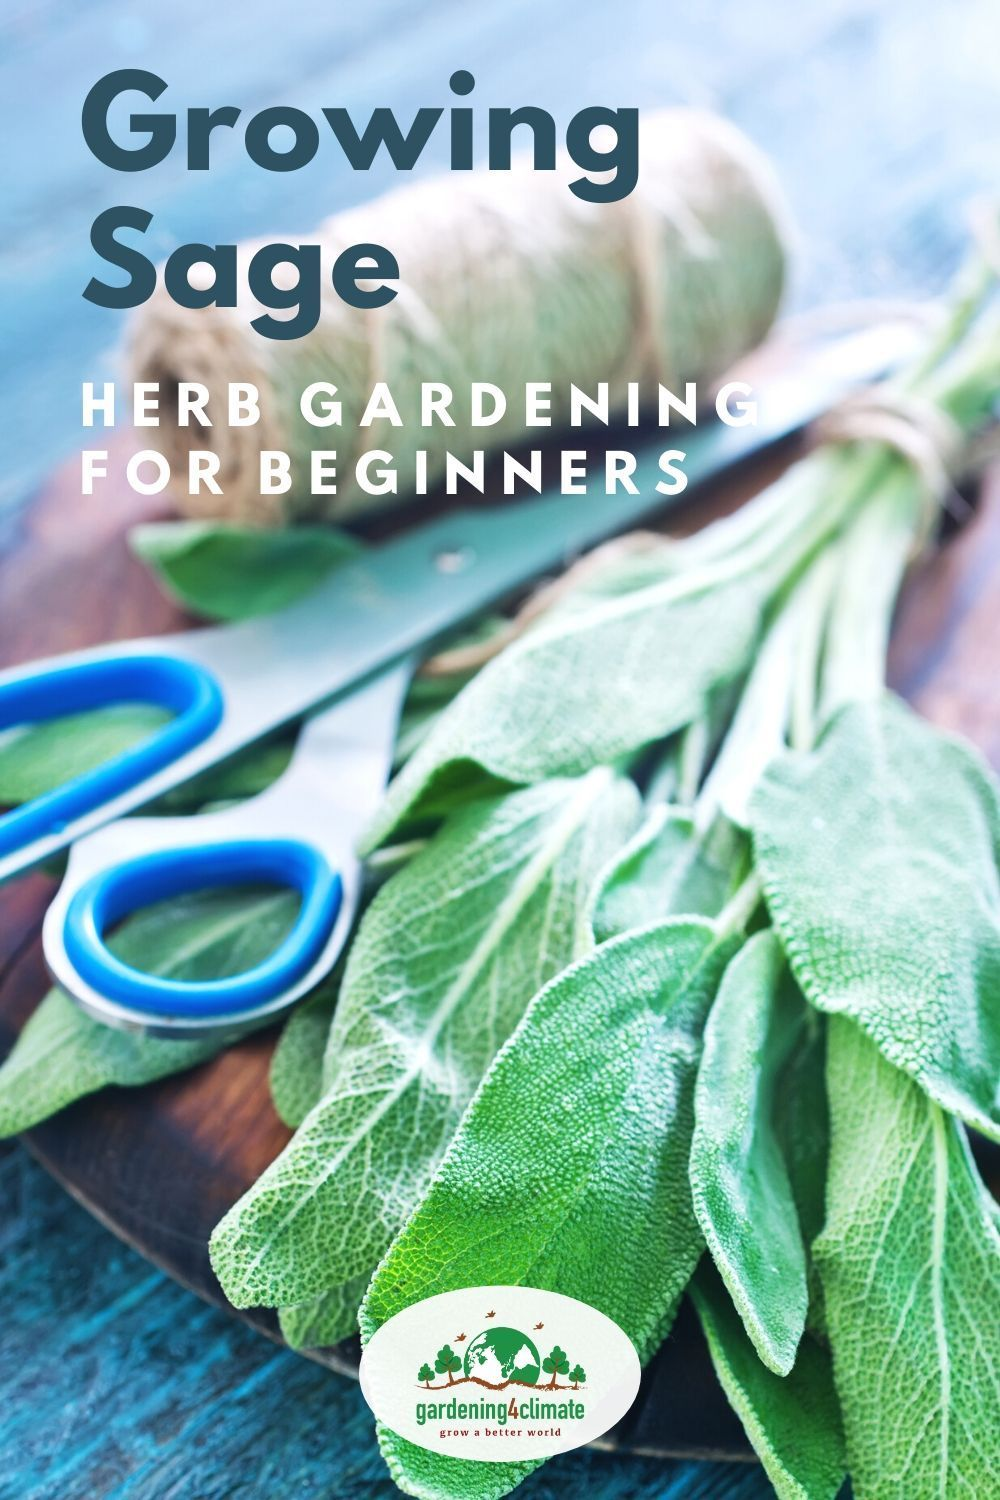 The Sage Plant  How To Grow Sage In Your Culinary Herb Garden is part of Growing sage, Sage plant, Herb garden, Diy herb garden, Healthy garden, Herbs - Everey serious herb gardener needs a Sage Plant! Growing Sage herb is not difficult grow a bush in a container or in your garden and enjoy the delicious leaves!